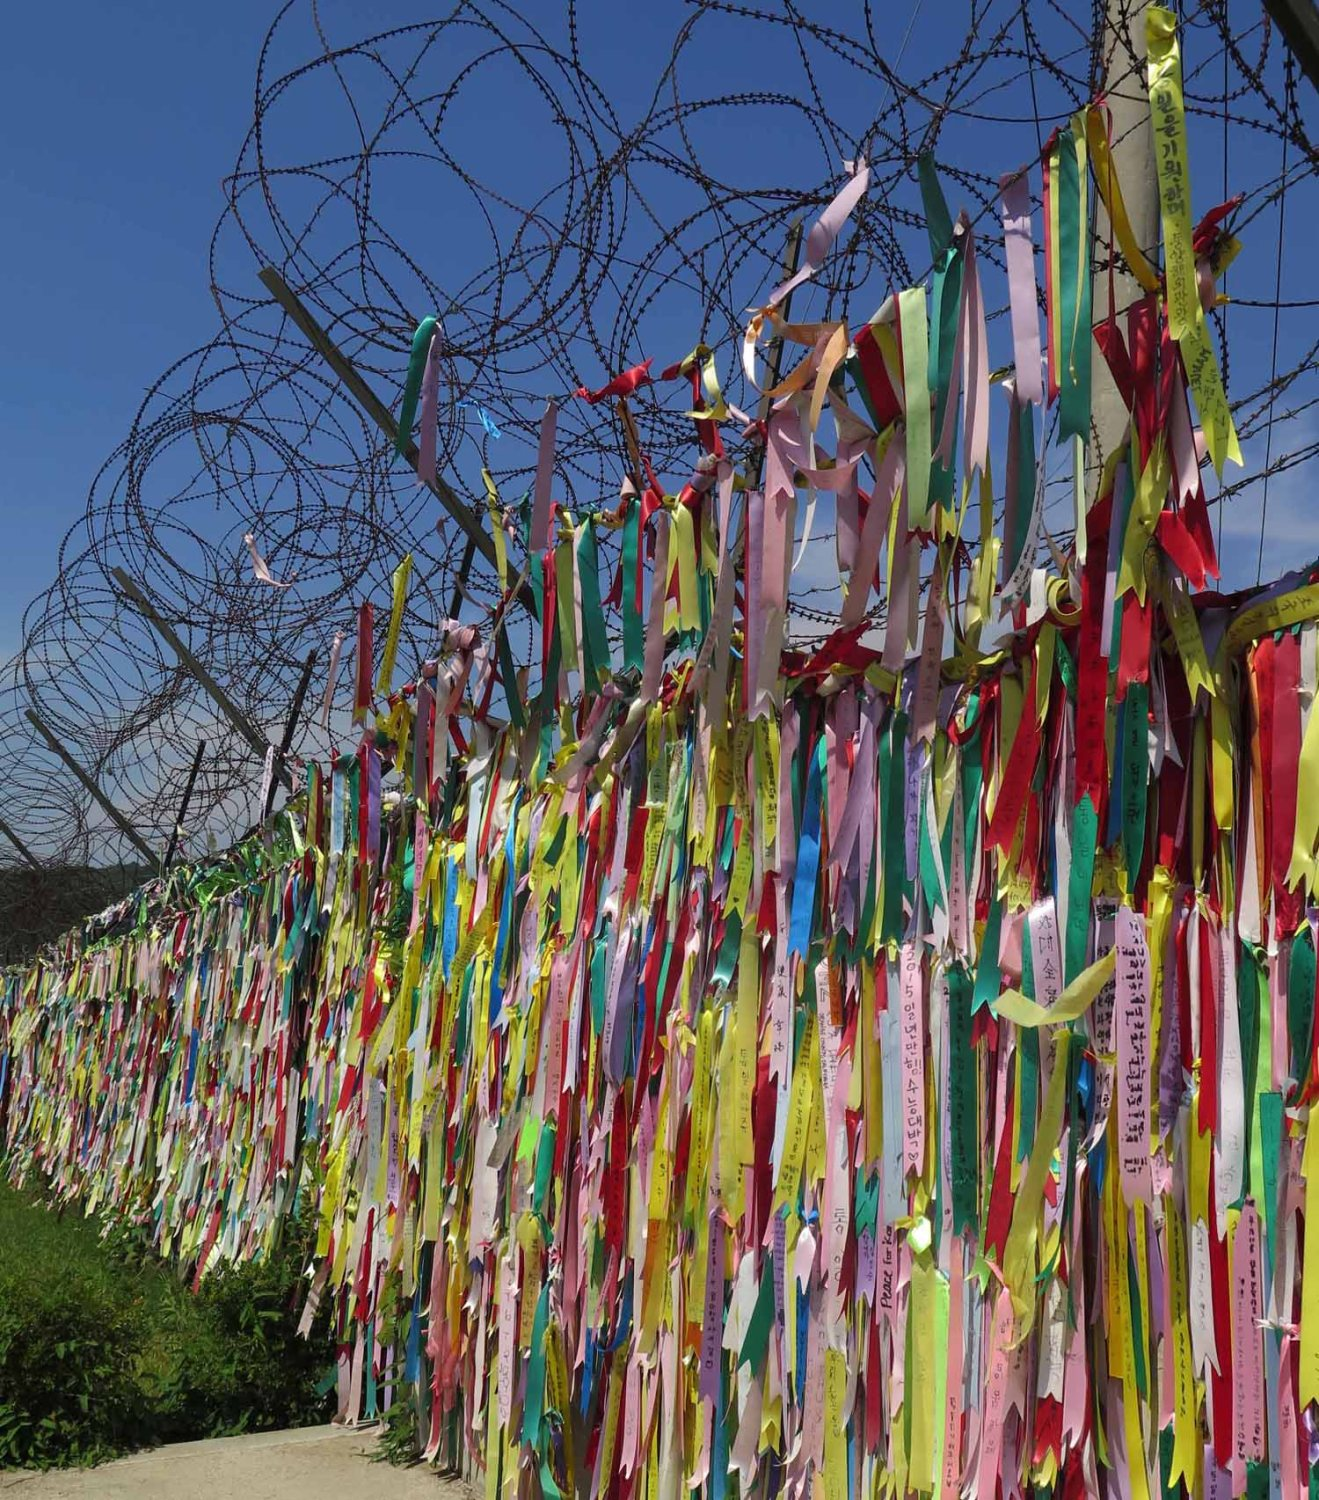 Korea-DMZ-Imjingak-Messages-To-North